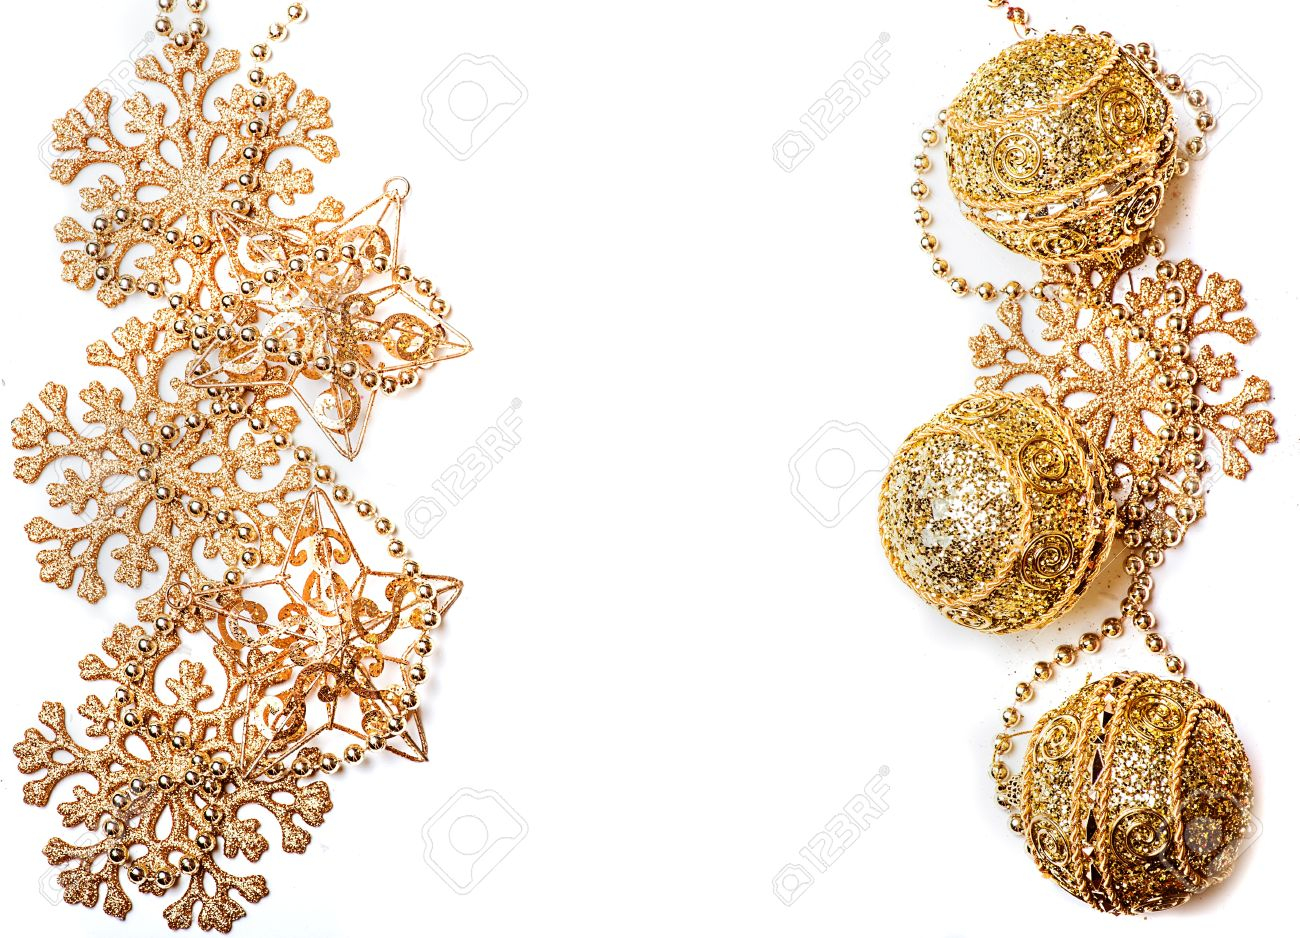 golden christmas decorations border or frame gold snowflakes stars beads and balls stock